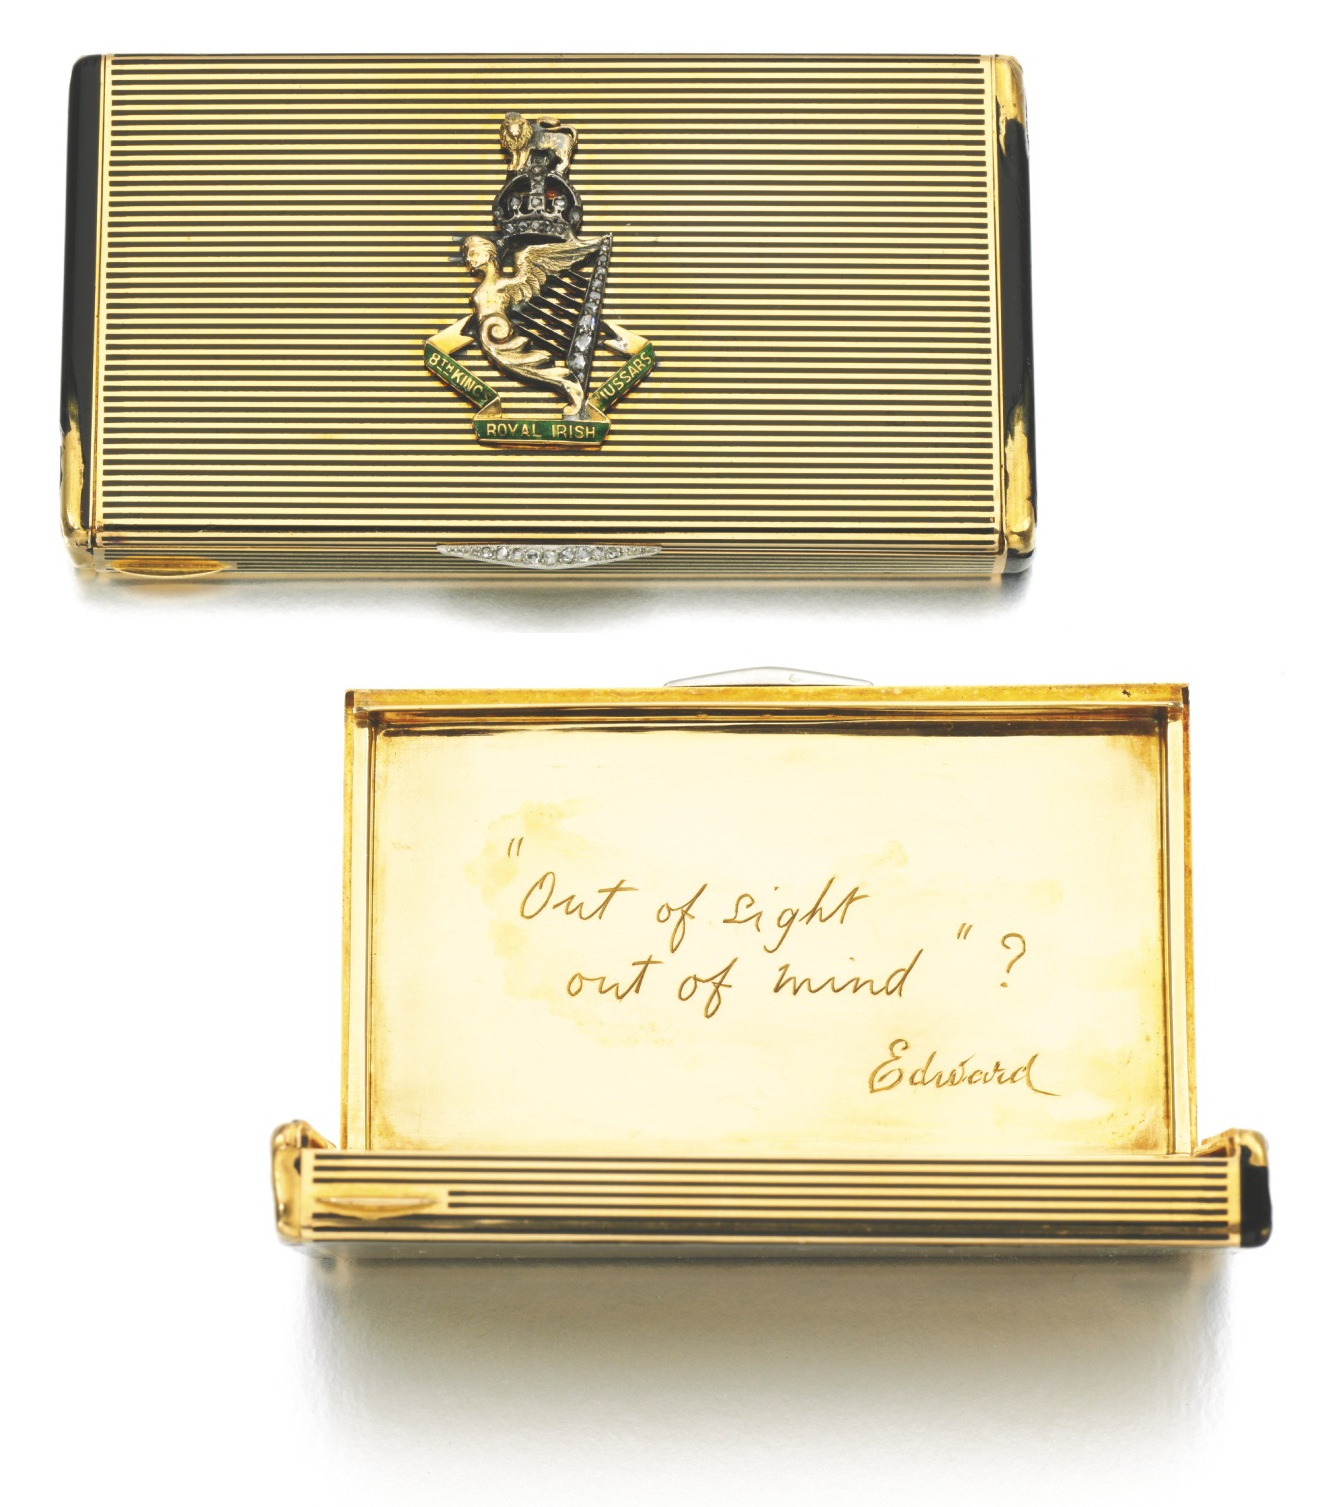 King Edward Memorabilia King Edward VIII's Lacloche Freres Case -- Decorated in Diamonds With the 8th King's Royal Irish Hussars Emblem -- Gifted Circa 1922